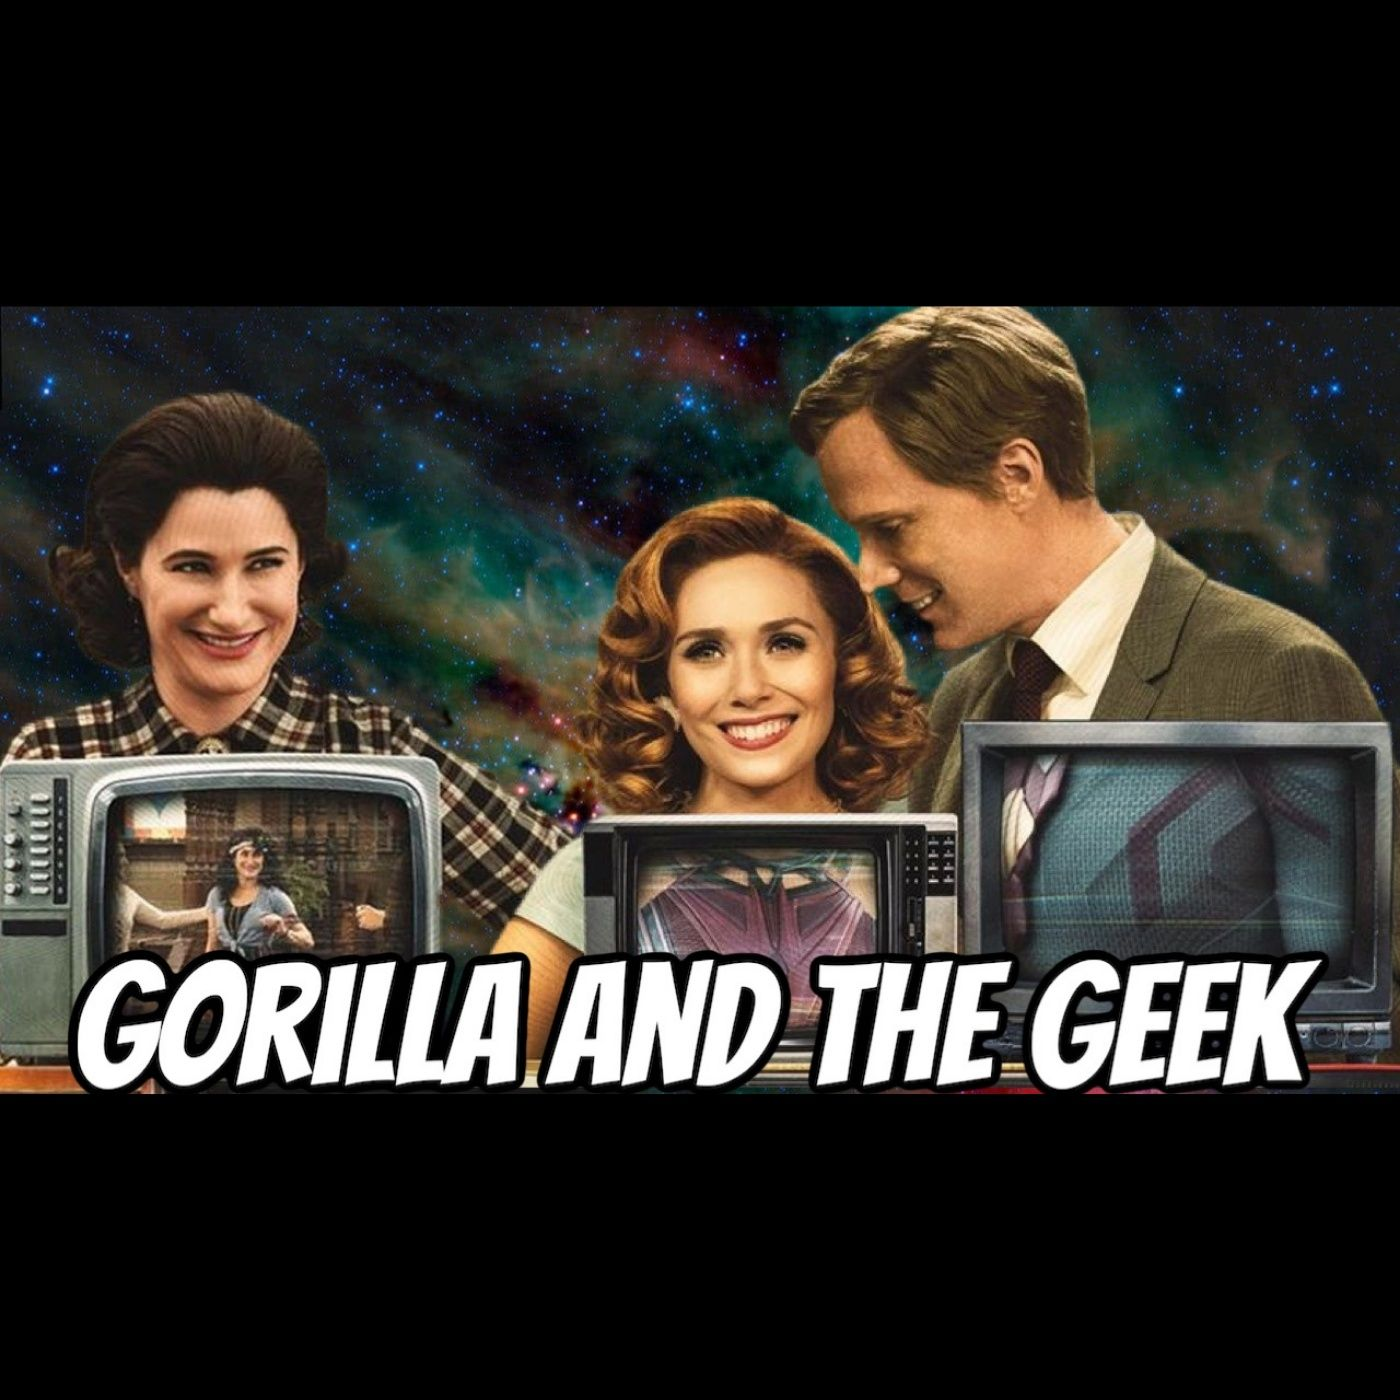 WandaVision Series Discussion Review - Gorilla and The Geek Episode 39